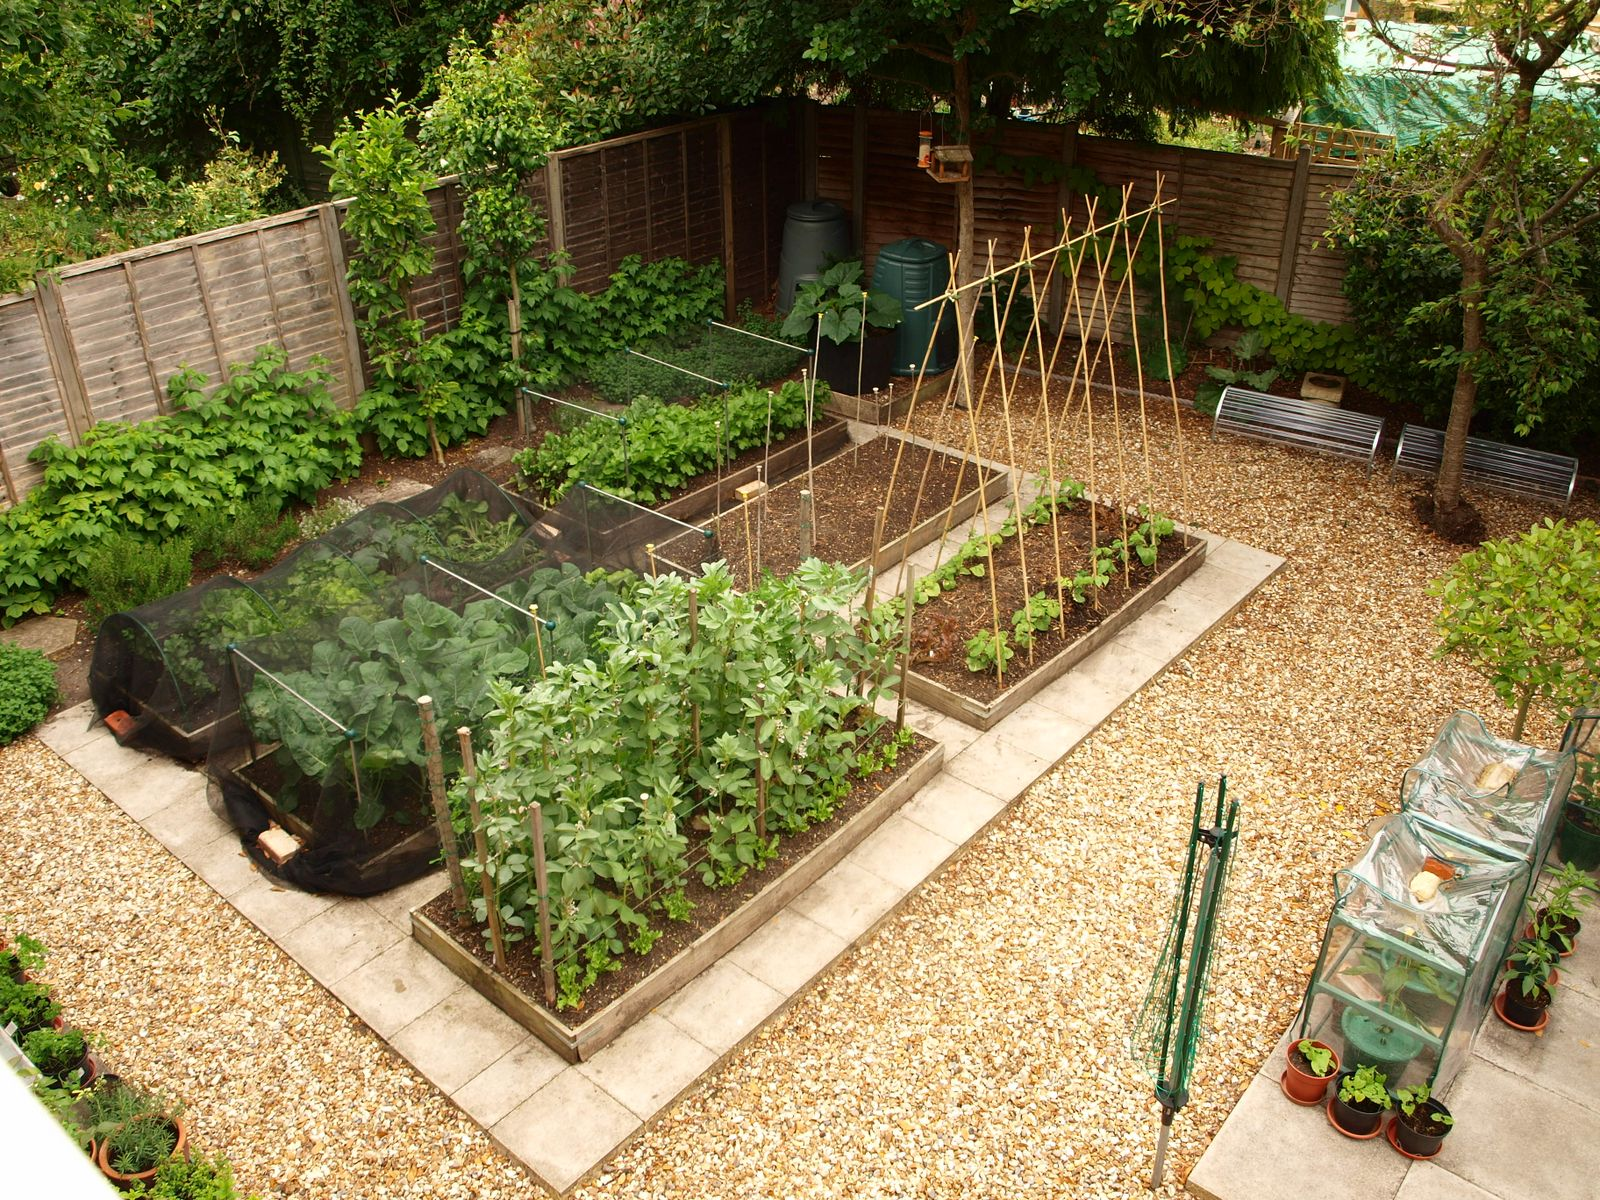 Mark's Veg Plot: Gardening tips for beginners